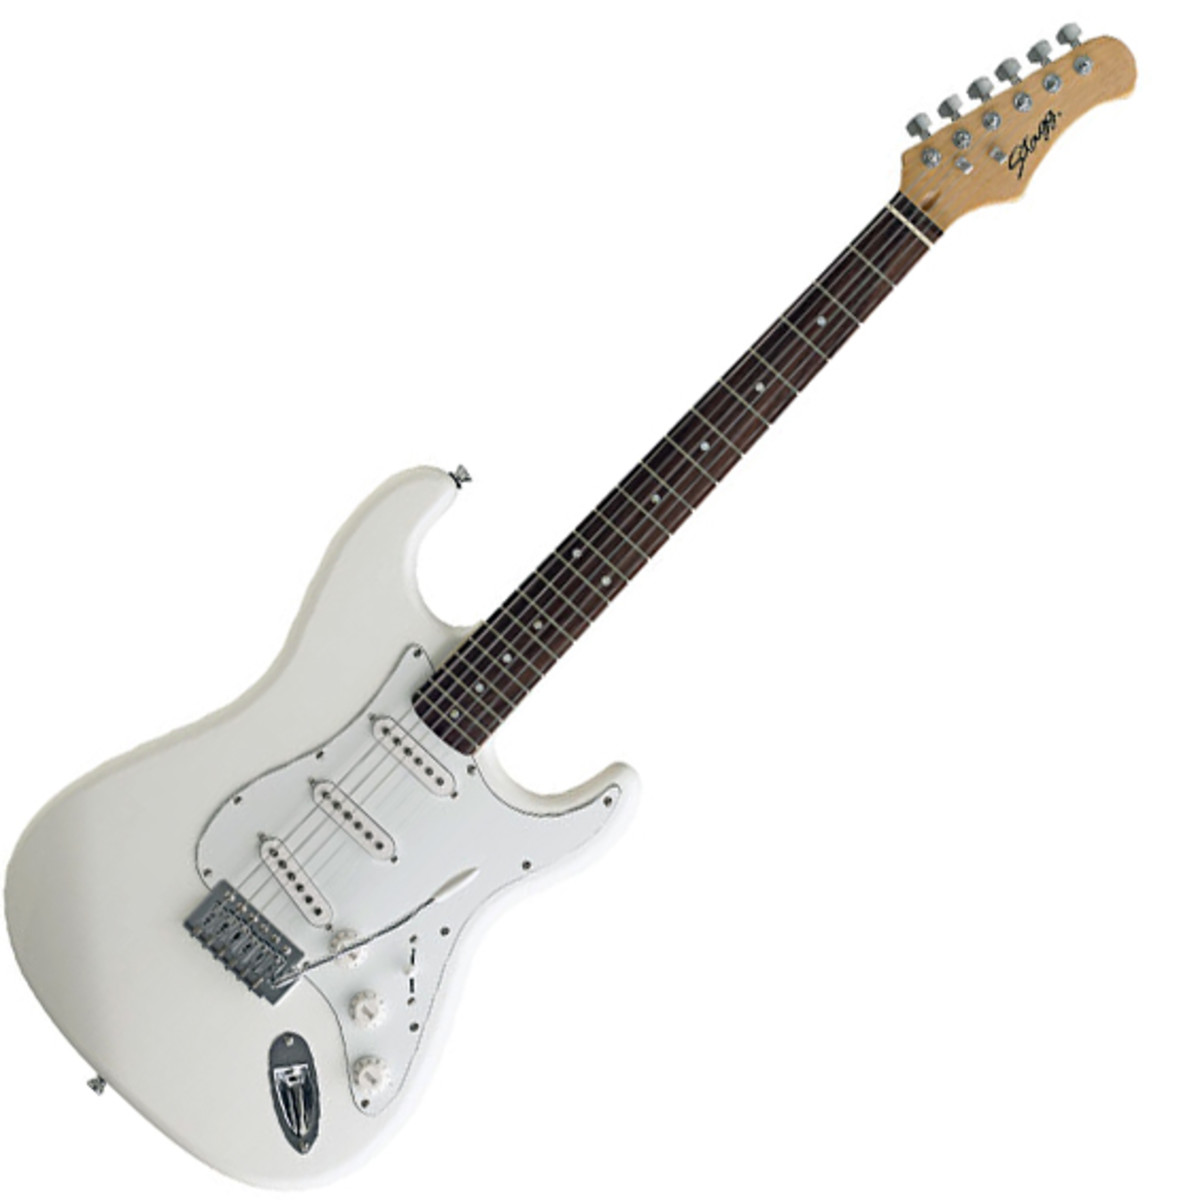 Stagg Stratocaster Guitar Review